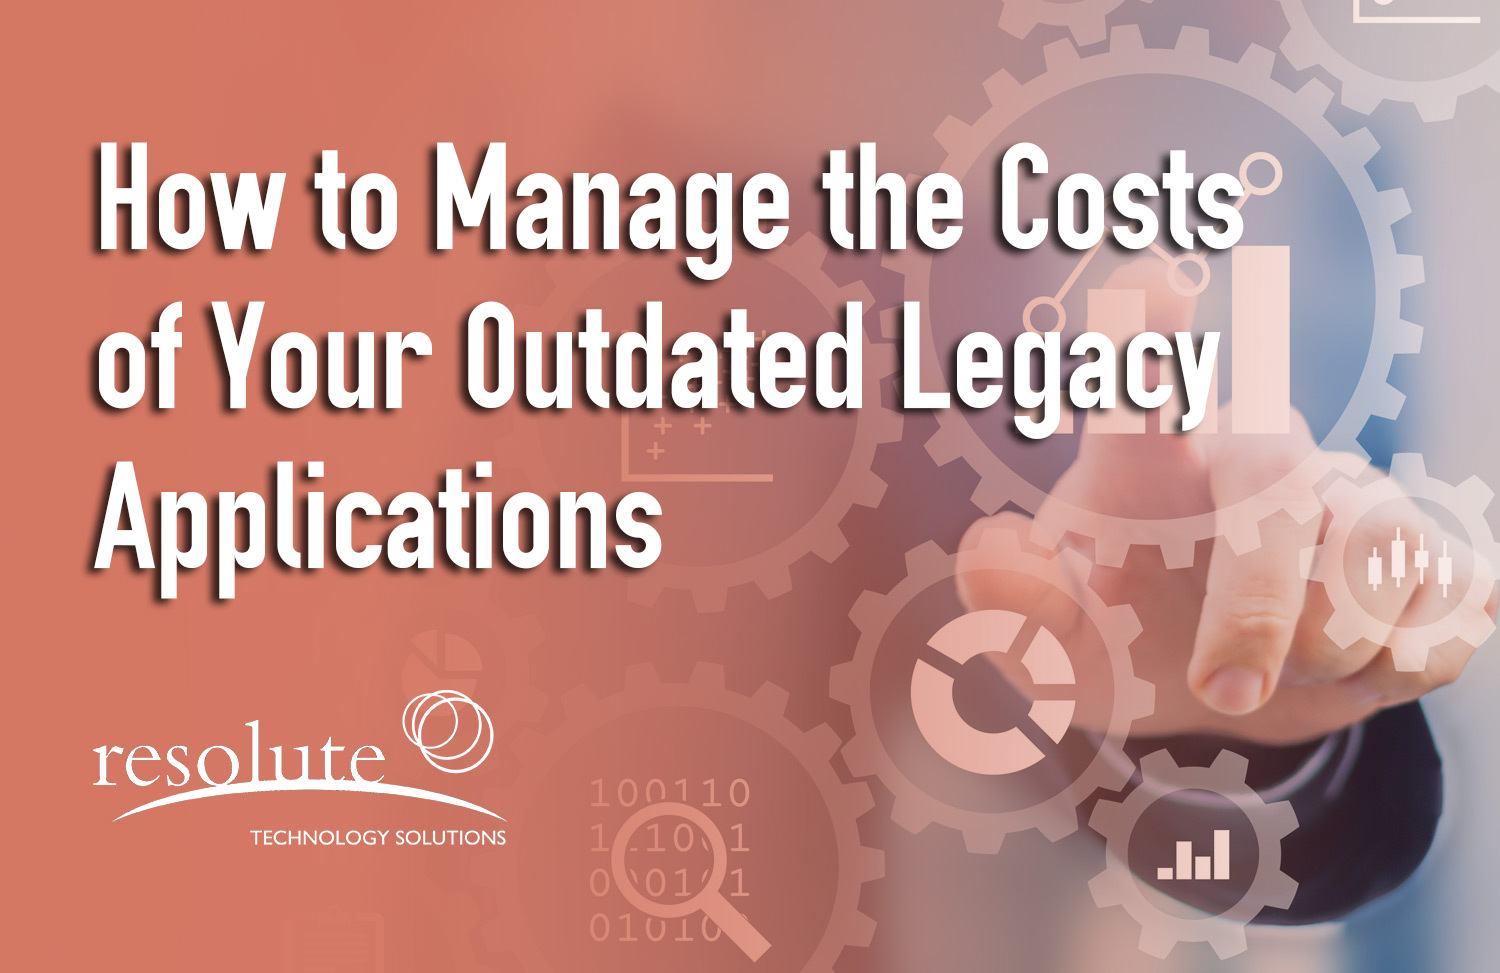 How to Manage the Costs of Your Outdated Legacy Applications